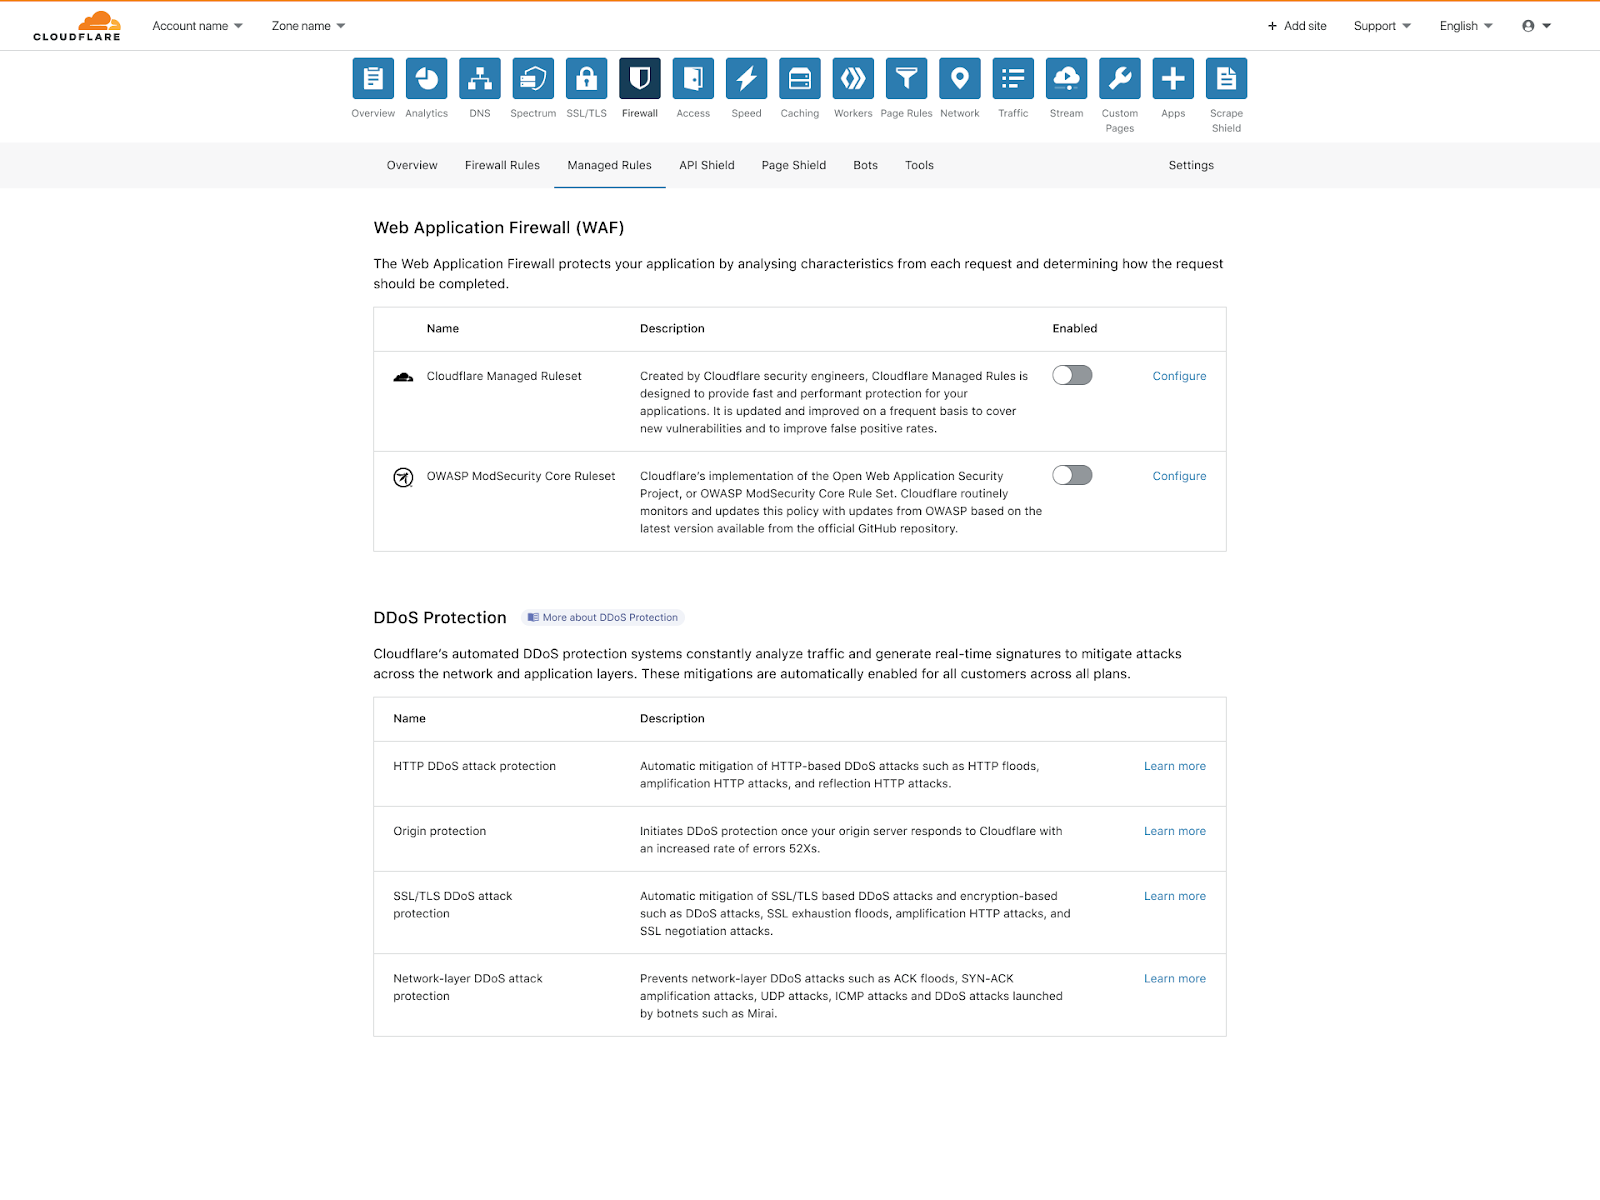 The new WAF UI. One click to turn on the Cloudflare Managed Ruleset and the Cloudflare OWASP ModSecurity Core Ruleset.